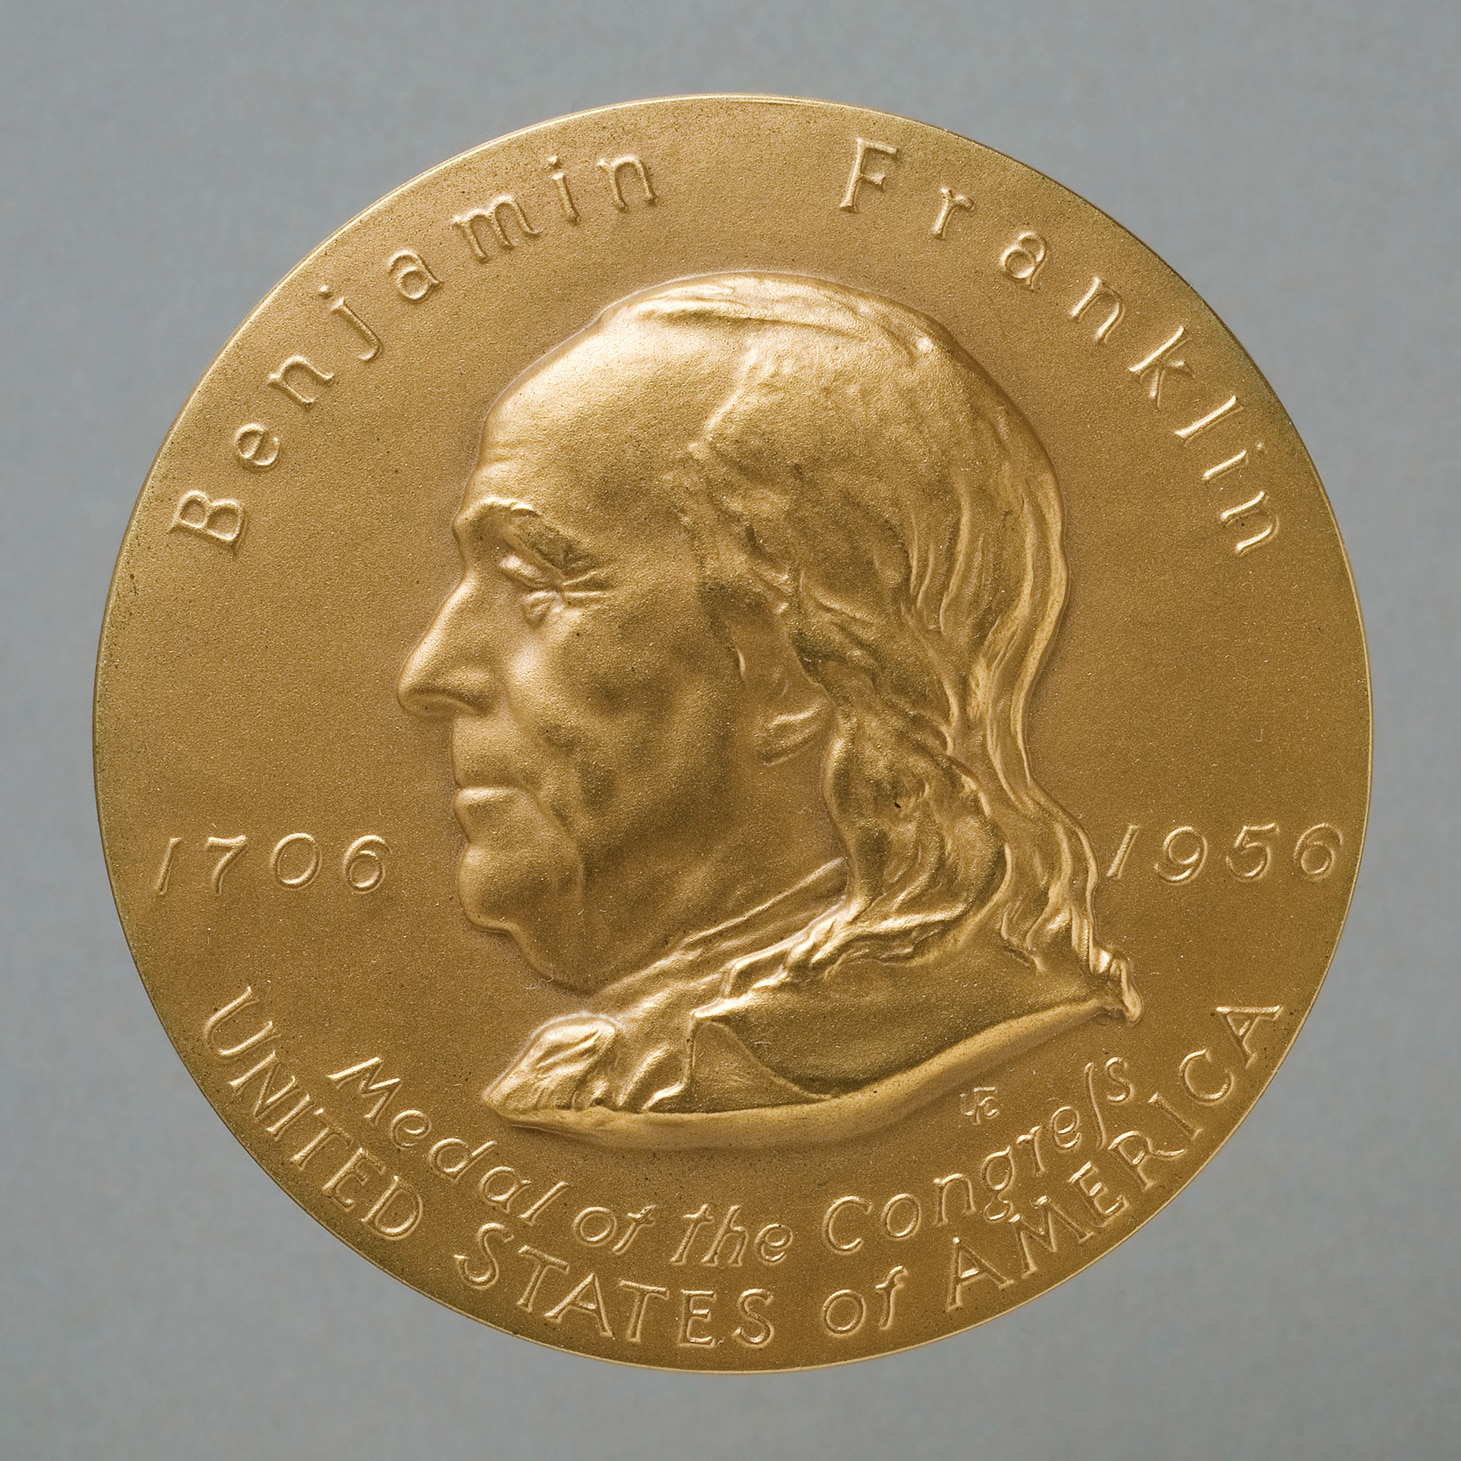 Photo showing the Benjamin Franklin Medal of the Congress, 1956. It was struck in honor of the 250th anniversary of Franklin's birth and distributed to organizations which are part of Franklin's legacy. [Department of State]